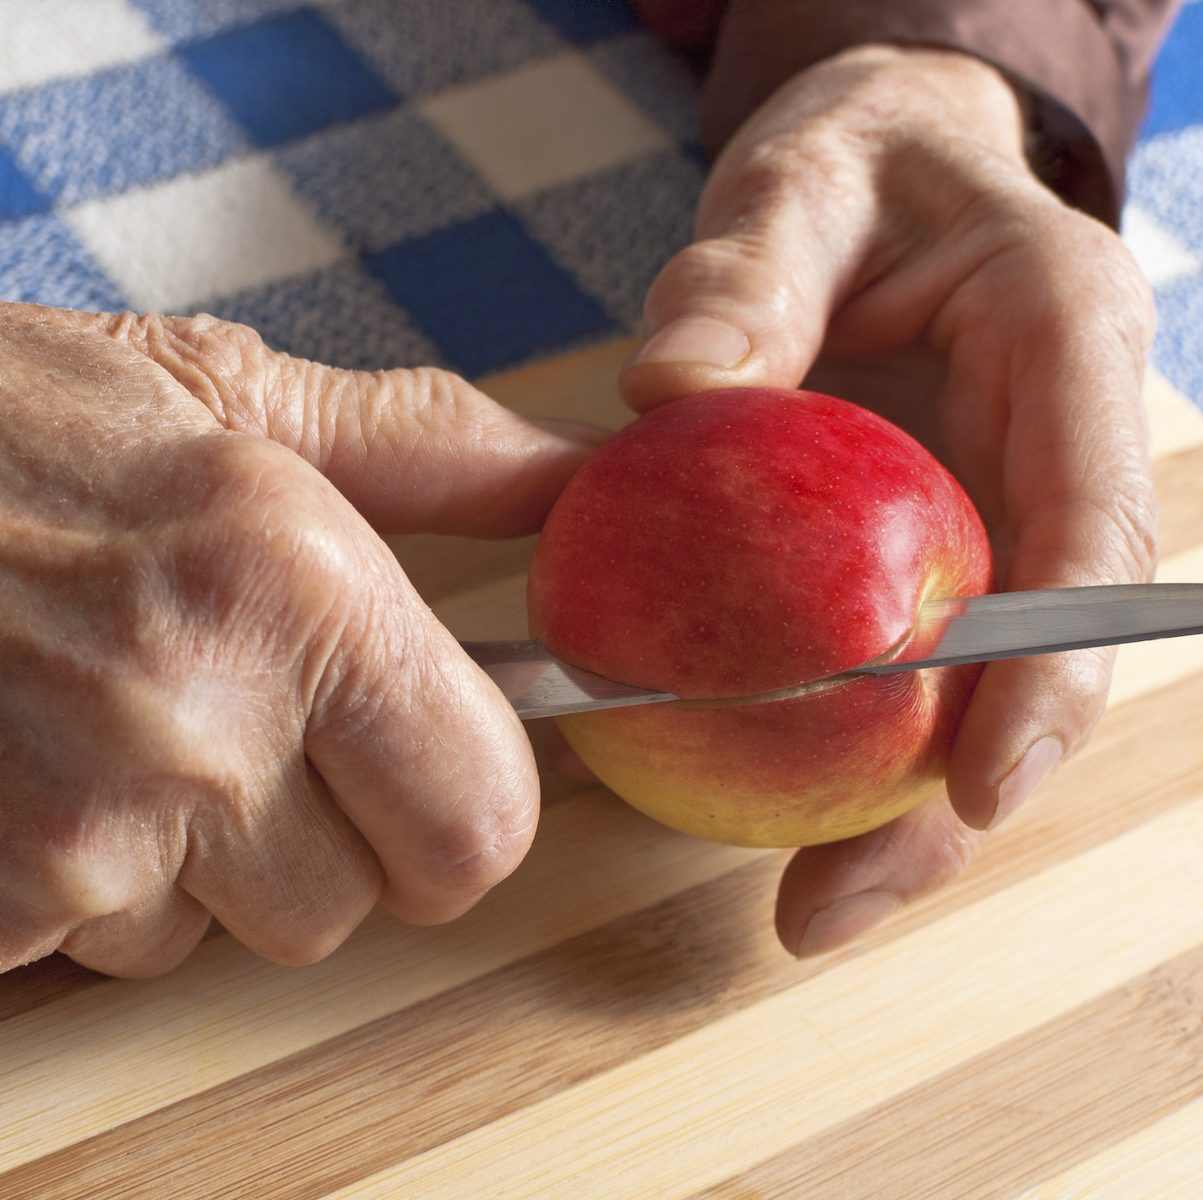 Old woman slicing an apple